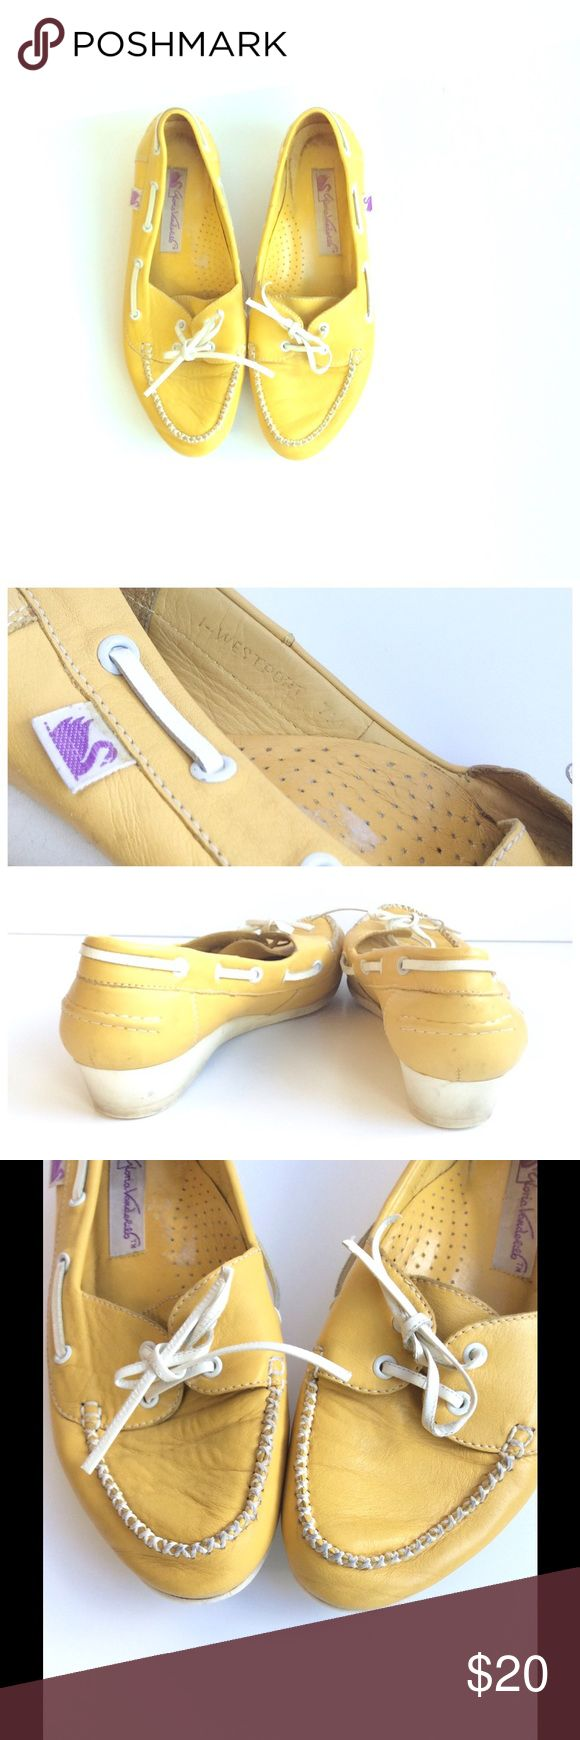 Vintage 80s Yellow Leather Loafers, Size 7M Vintage deck shoes from the 1980s in mustard yellow leather featuring white leather lace and wedge heels. Purple swan logo tag on side (I LOVE THIS) These are a vintage size 7M and will fit a modern size 6 1/2 to 7 due to vanity sizing. Check measurements below to be sure.  Brand: Gloria Vanderbilt Size: 7 M  Fabric: Leather Condition: Good - some scuffs and/or staining on wedge and sole. Writing on sole.  Measurements in inches: Length of insole…